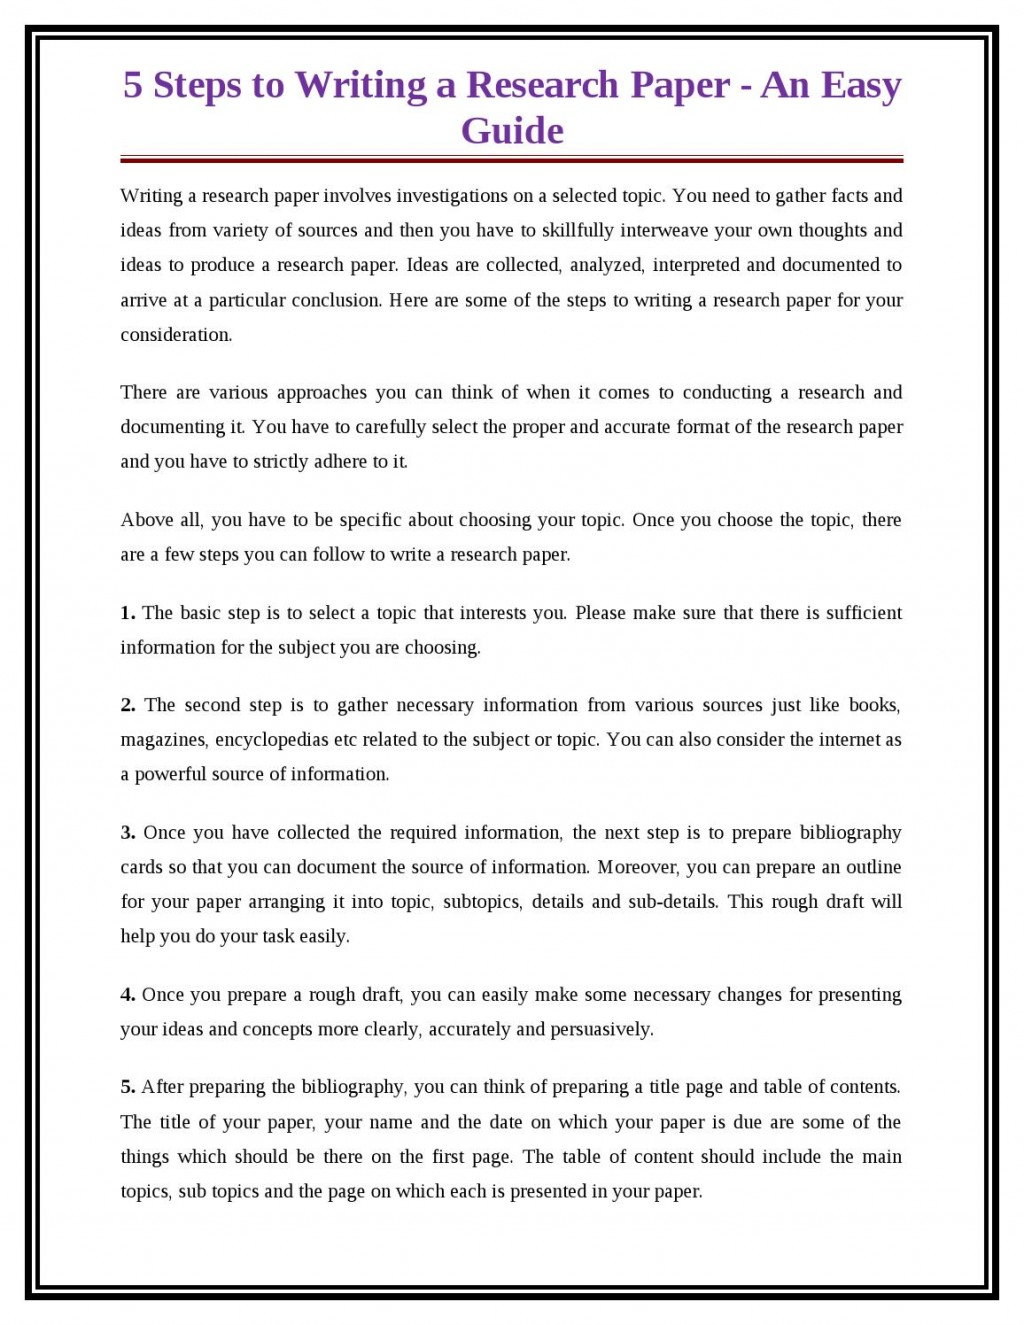 002 Page 1 Research Paper Steps Frightening Writing 12 Ten For Papers To A 10 Large